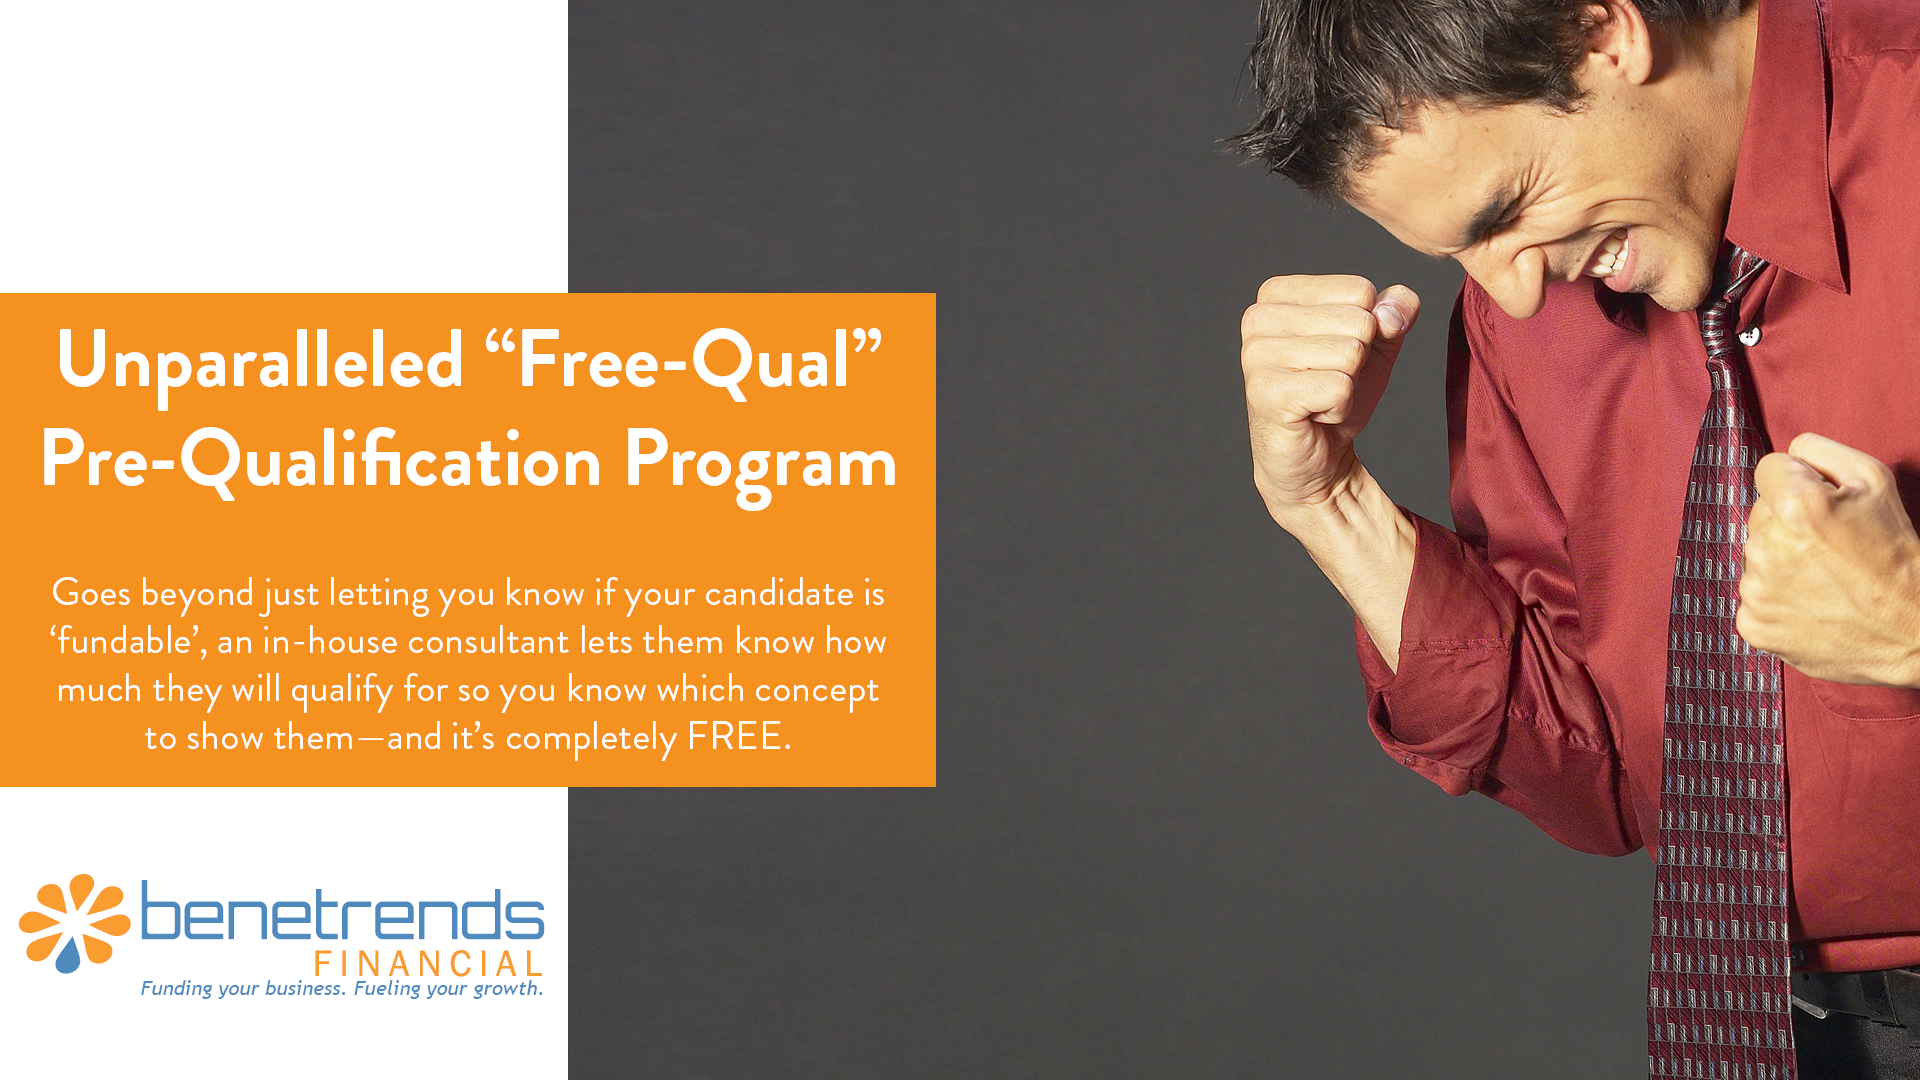 Benetrends Financial Pre-Qualification Program